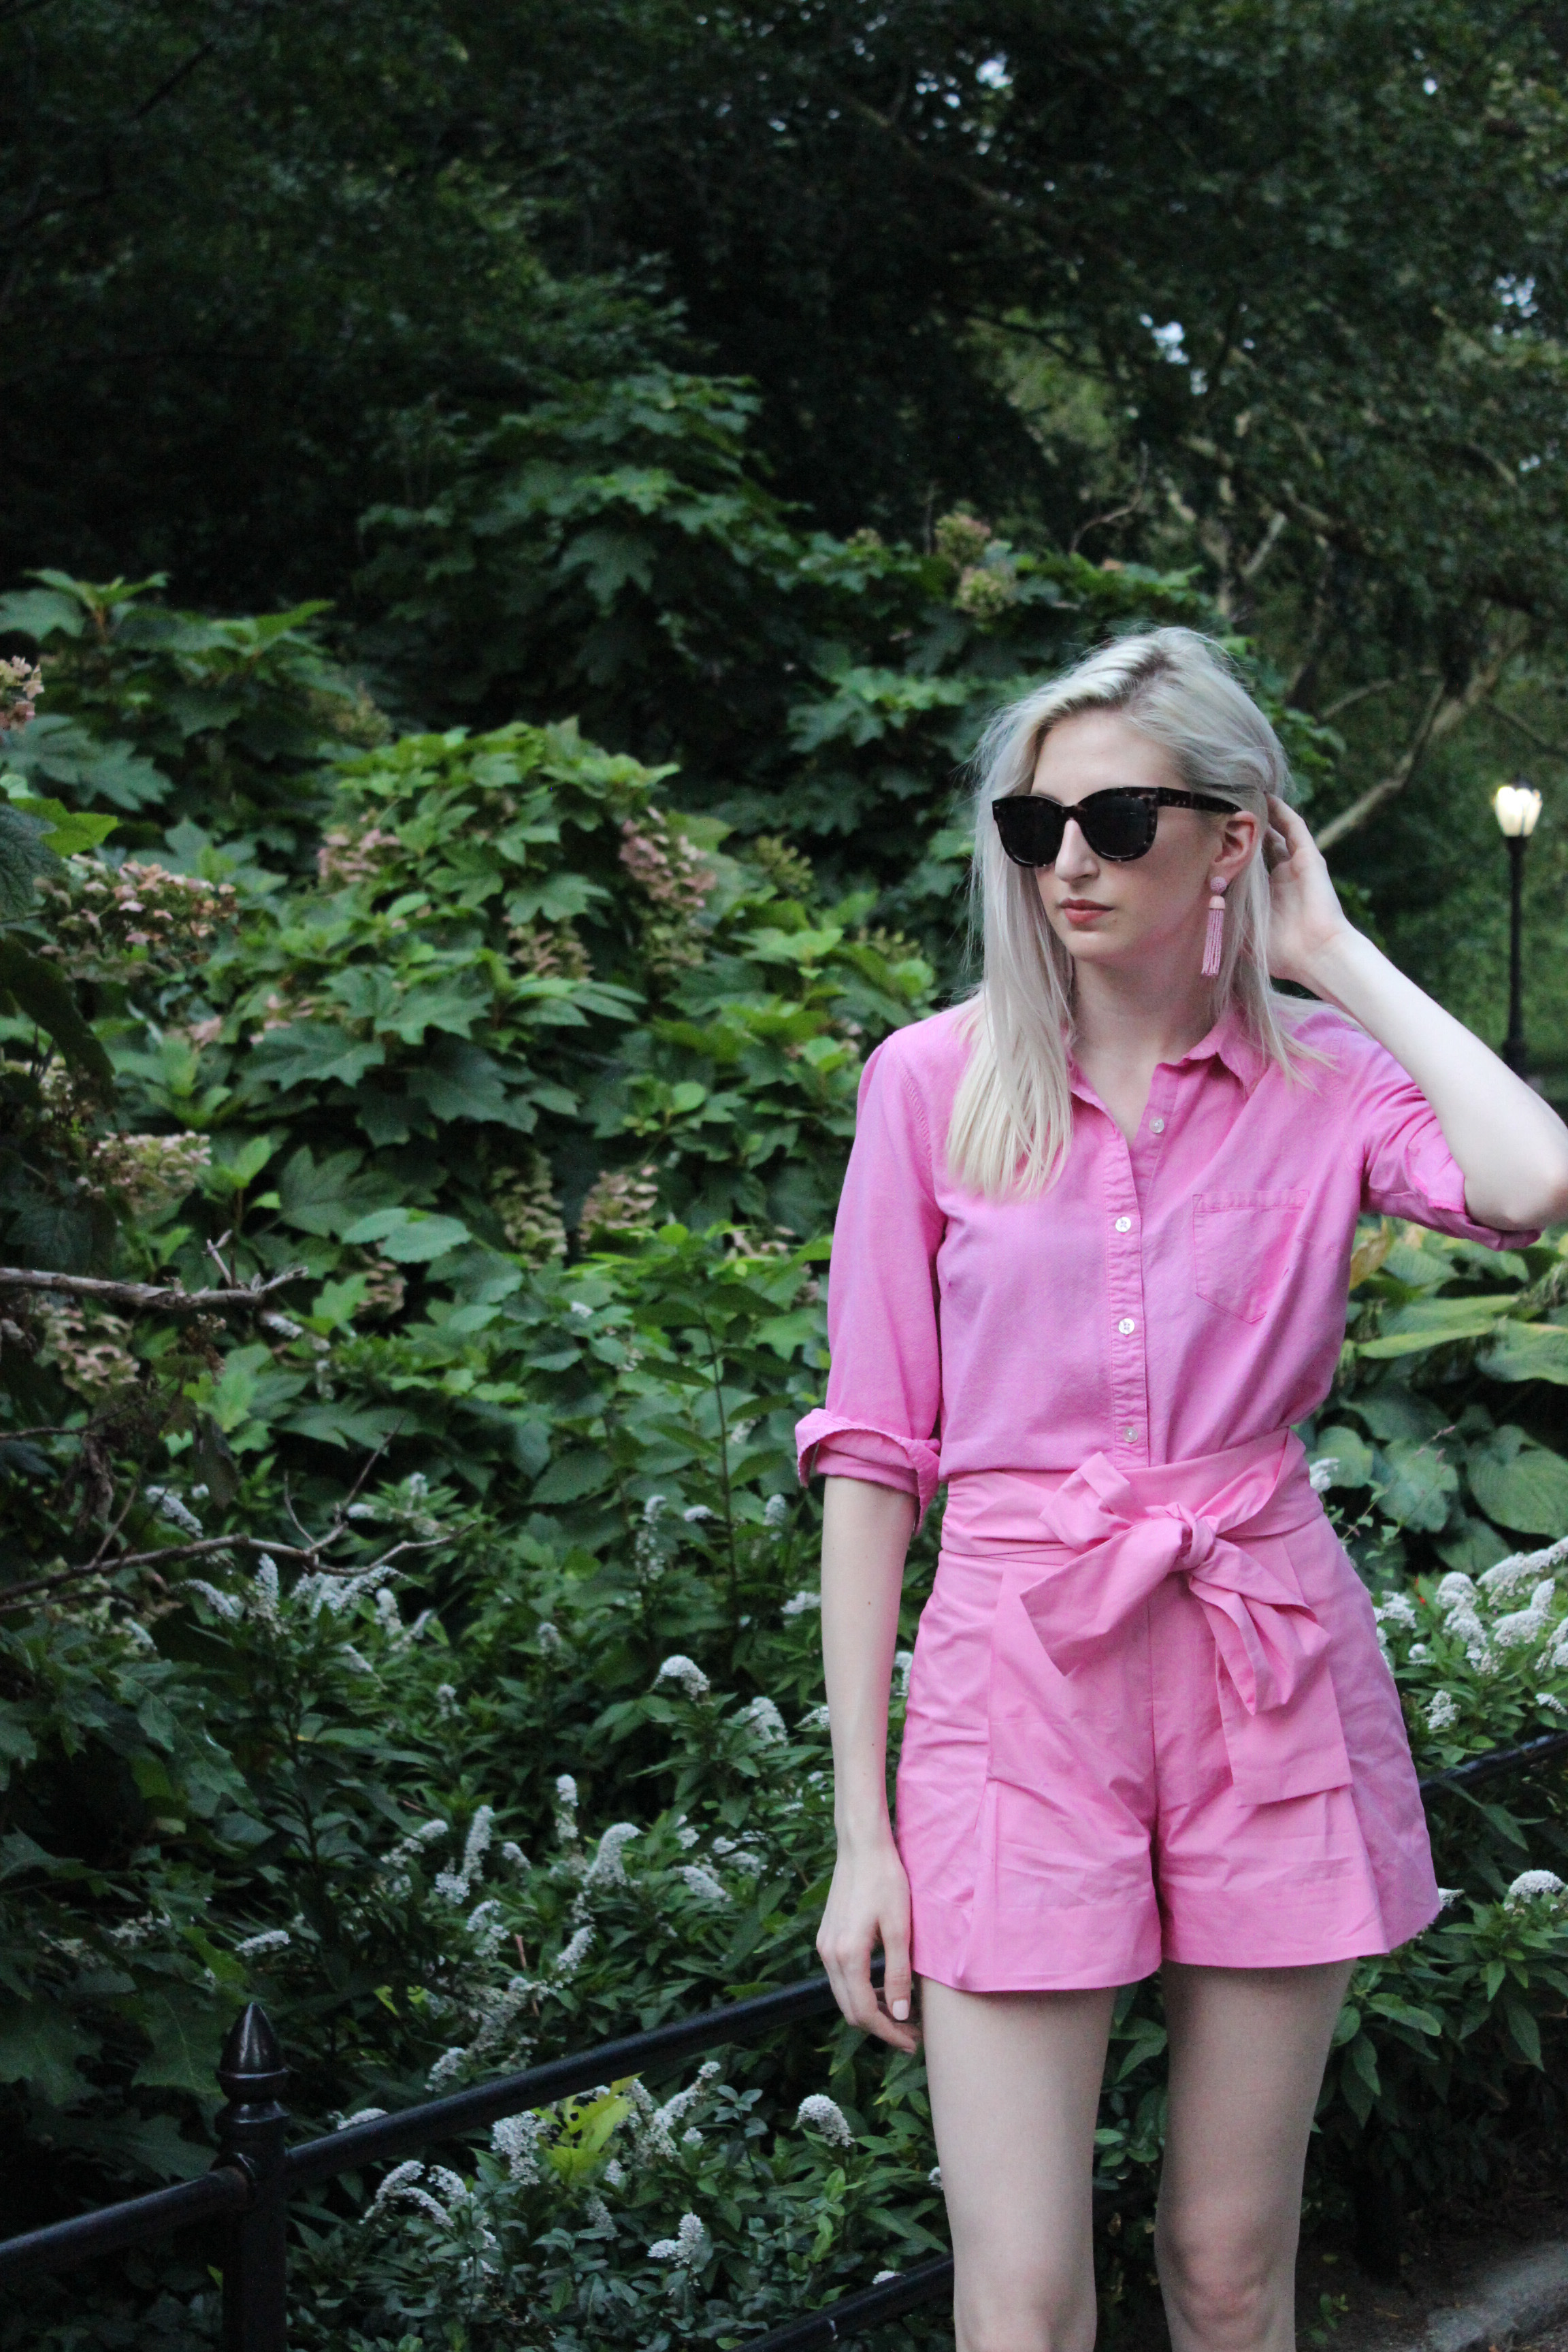 J.Crew hot pink bow tie shorts, pink button down, heeled sandals, and tassel earrings. All pink monochrome outfit. elle woods style